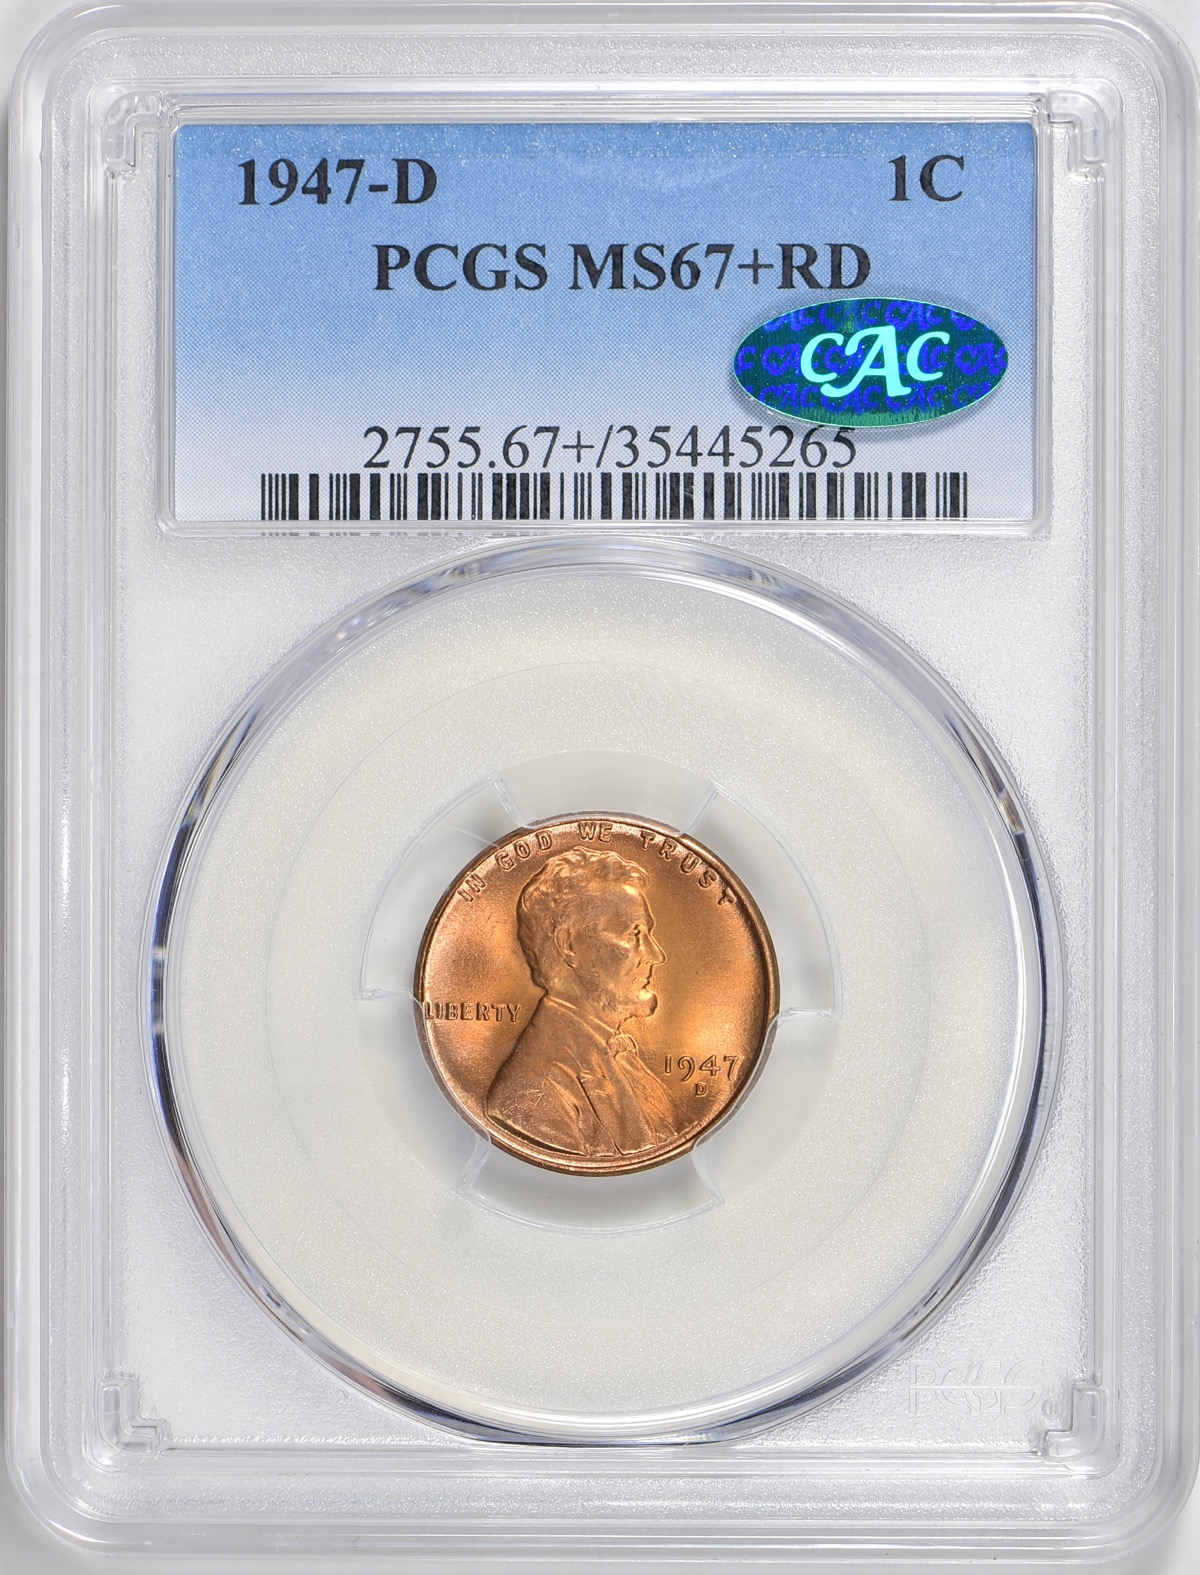 1947-D MS67+RD CAC - Acquired GreatCollections 7/1/2018. Replaces a MS67RD. An example of an undervalued coin based on the numbers. It went for a little over $2,000 even though CAC, only six in this grade and none finer. In the highly competitive Lincoln set registries these are the coins in demand.